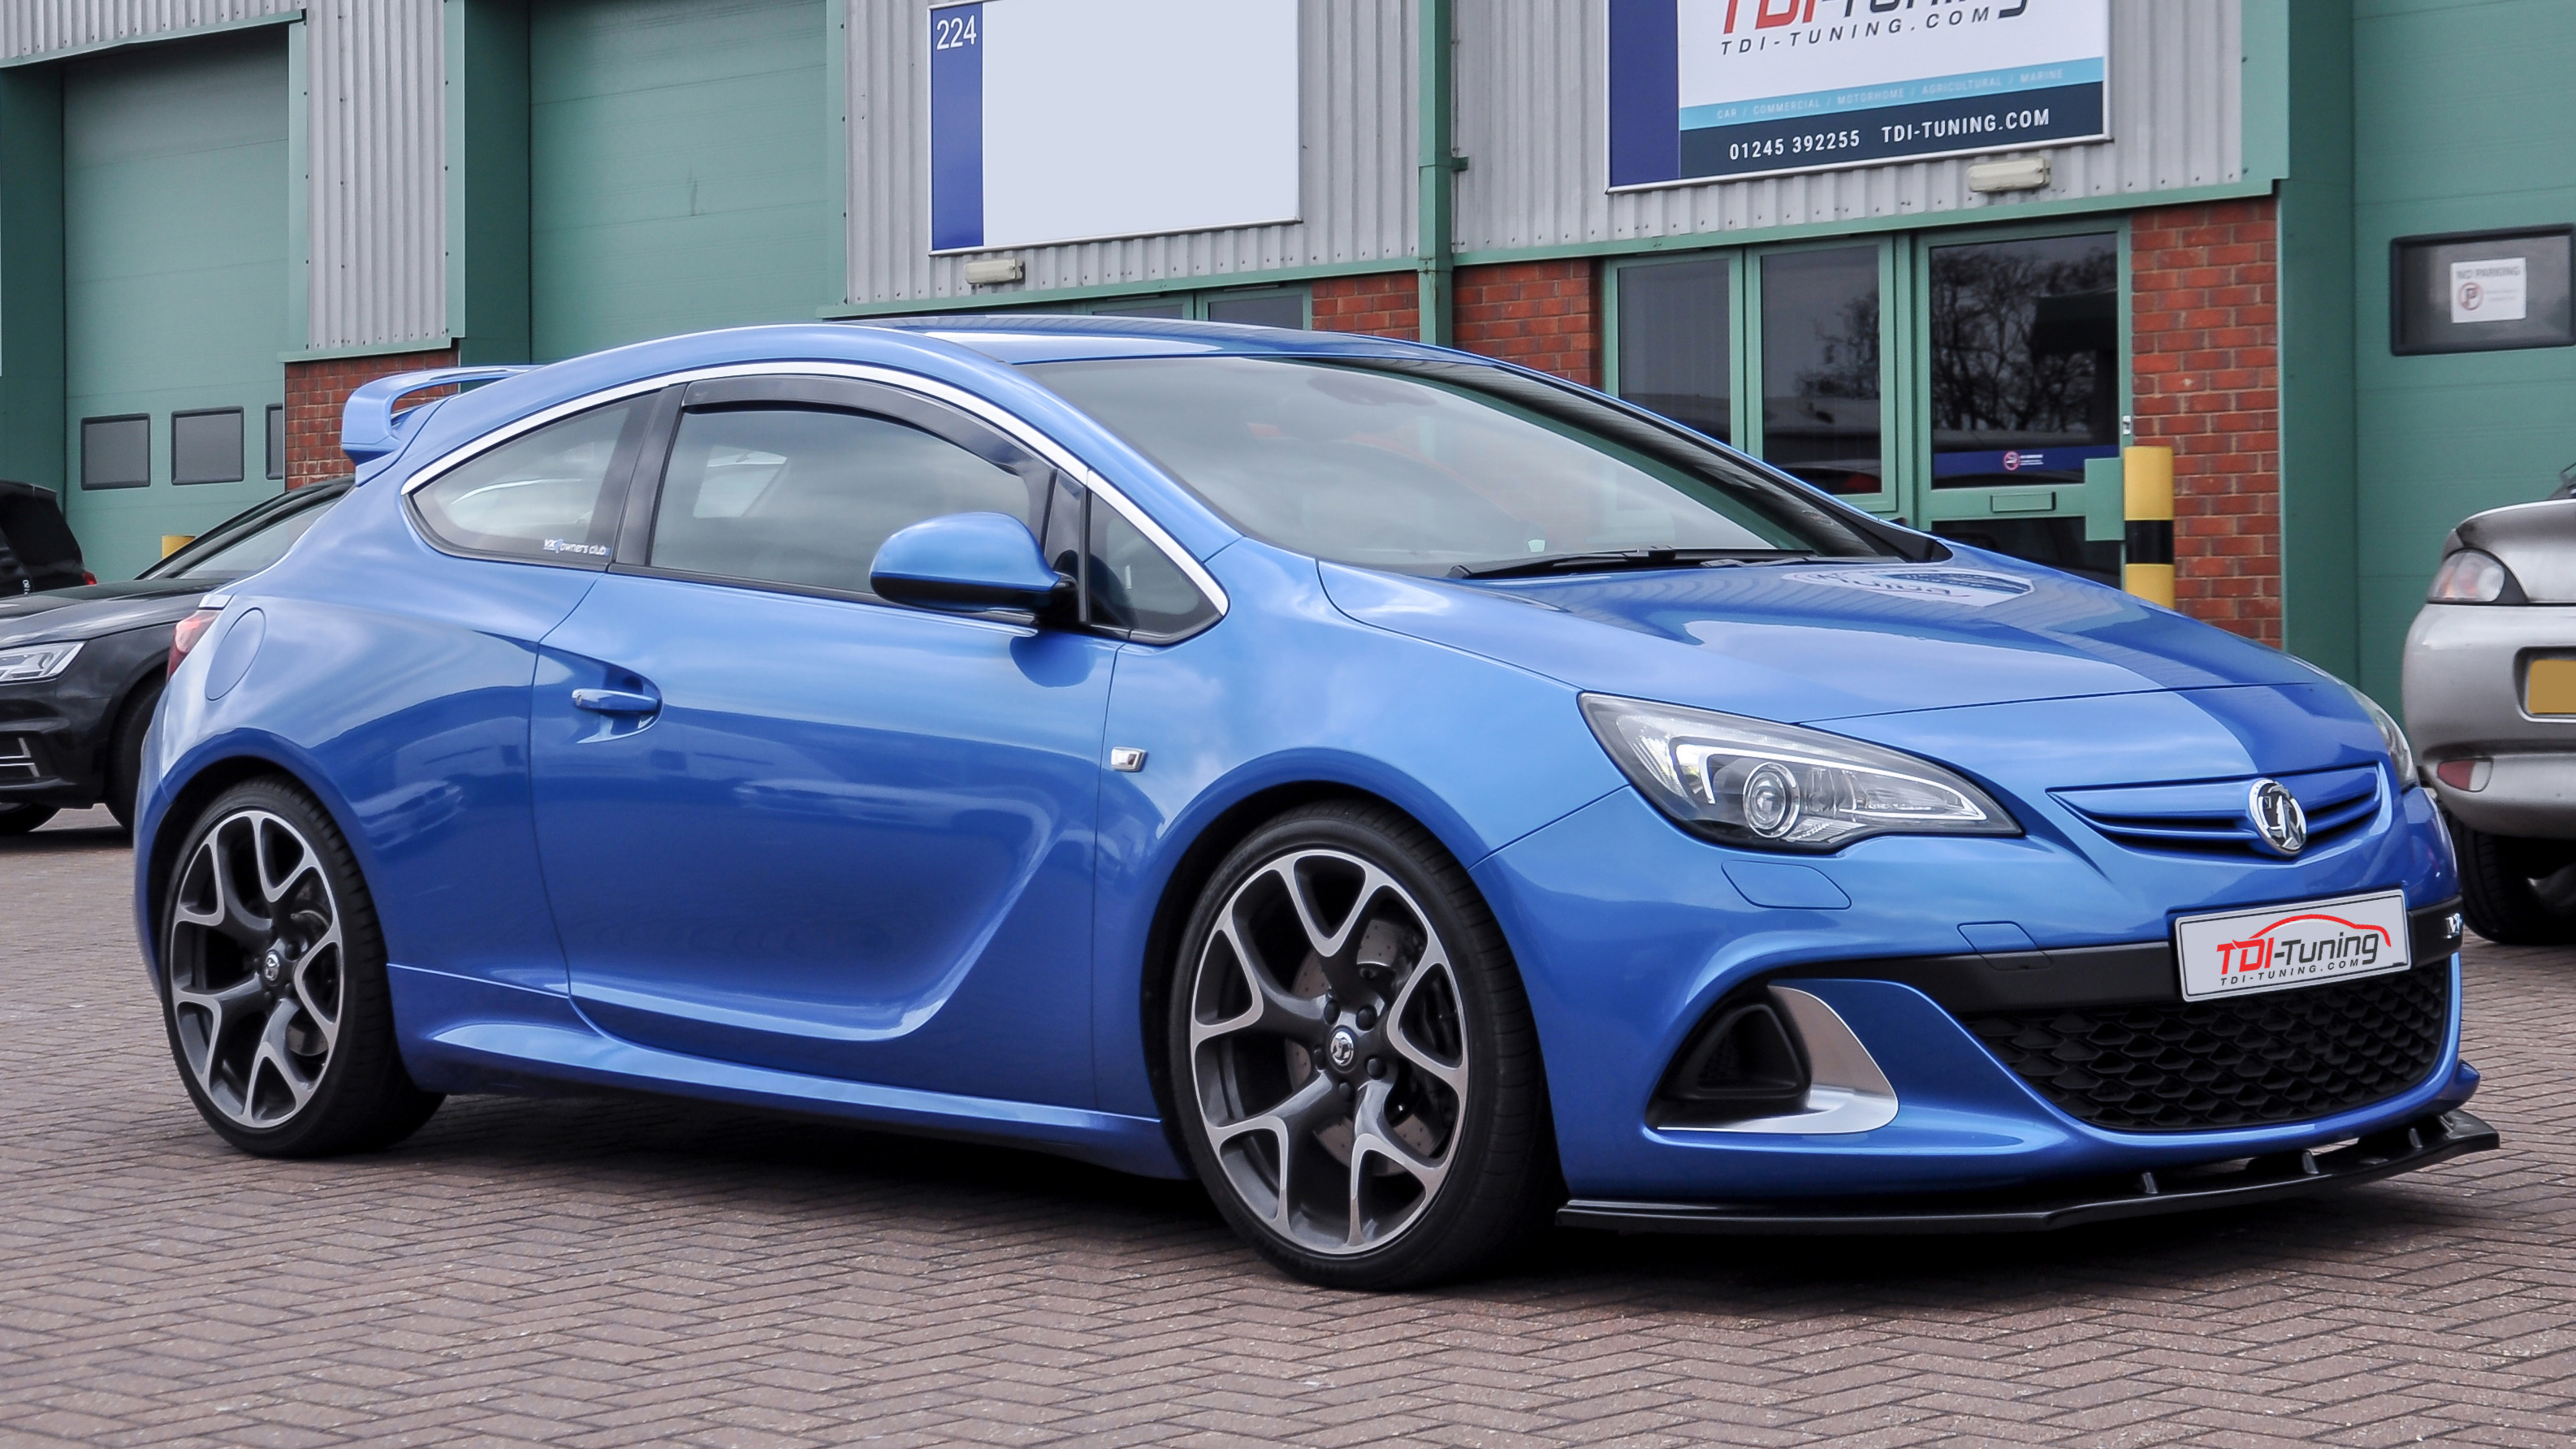 tdi tuning august car of the month vauxhall astra vxr. Black Bedroom Furniture Sets. Home Design Ideas